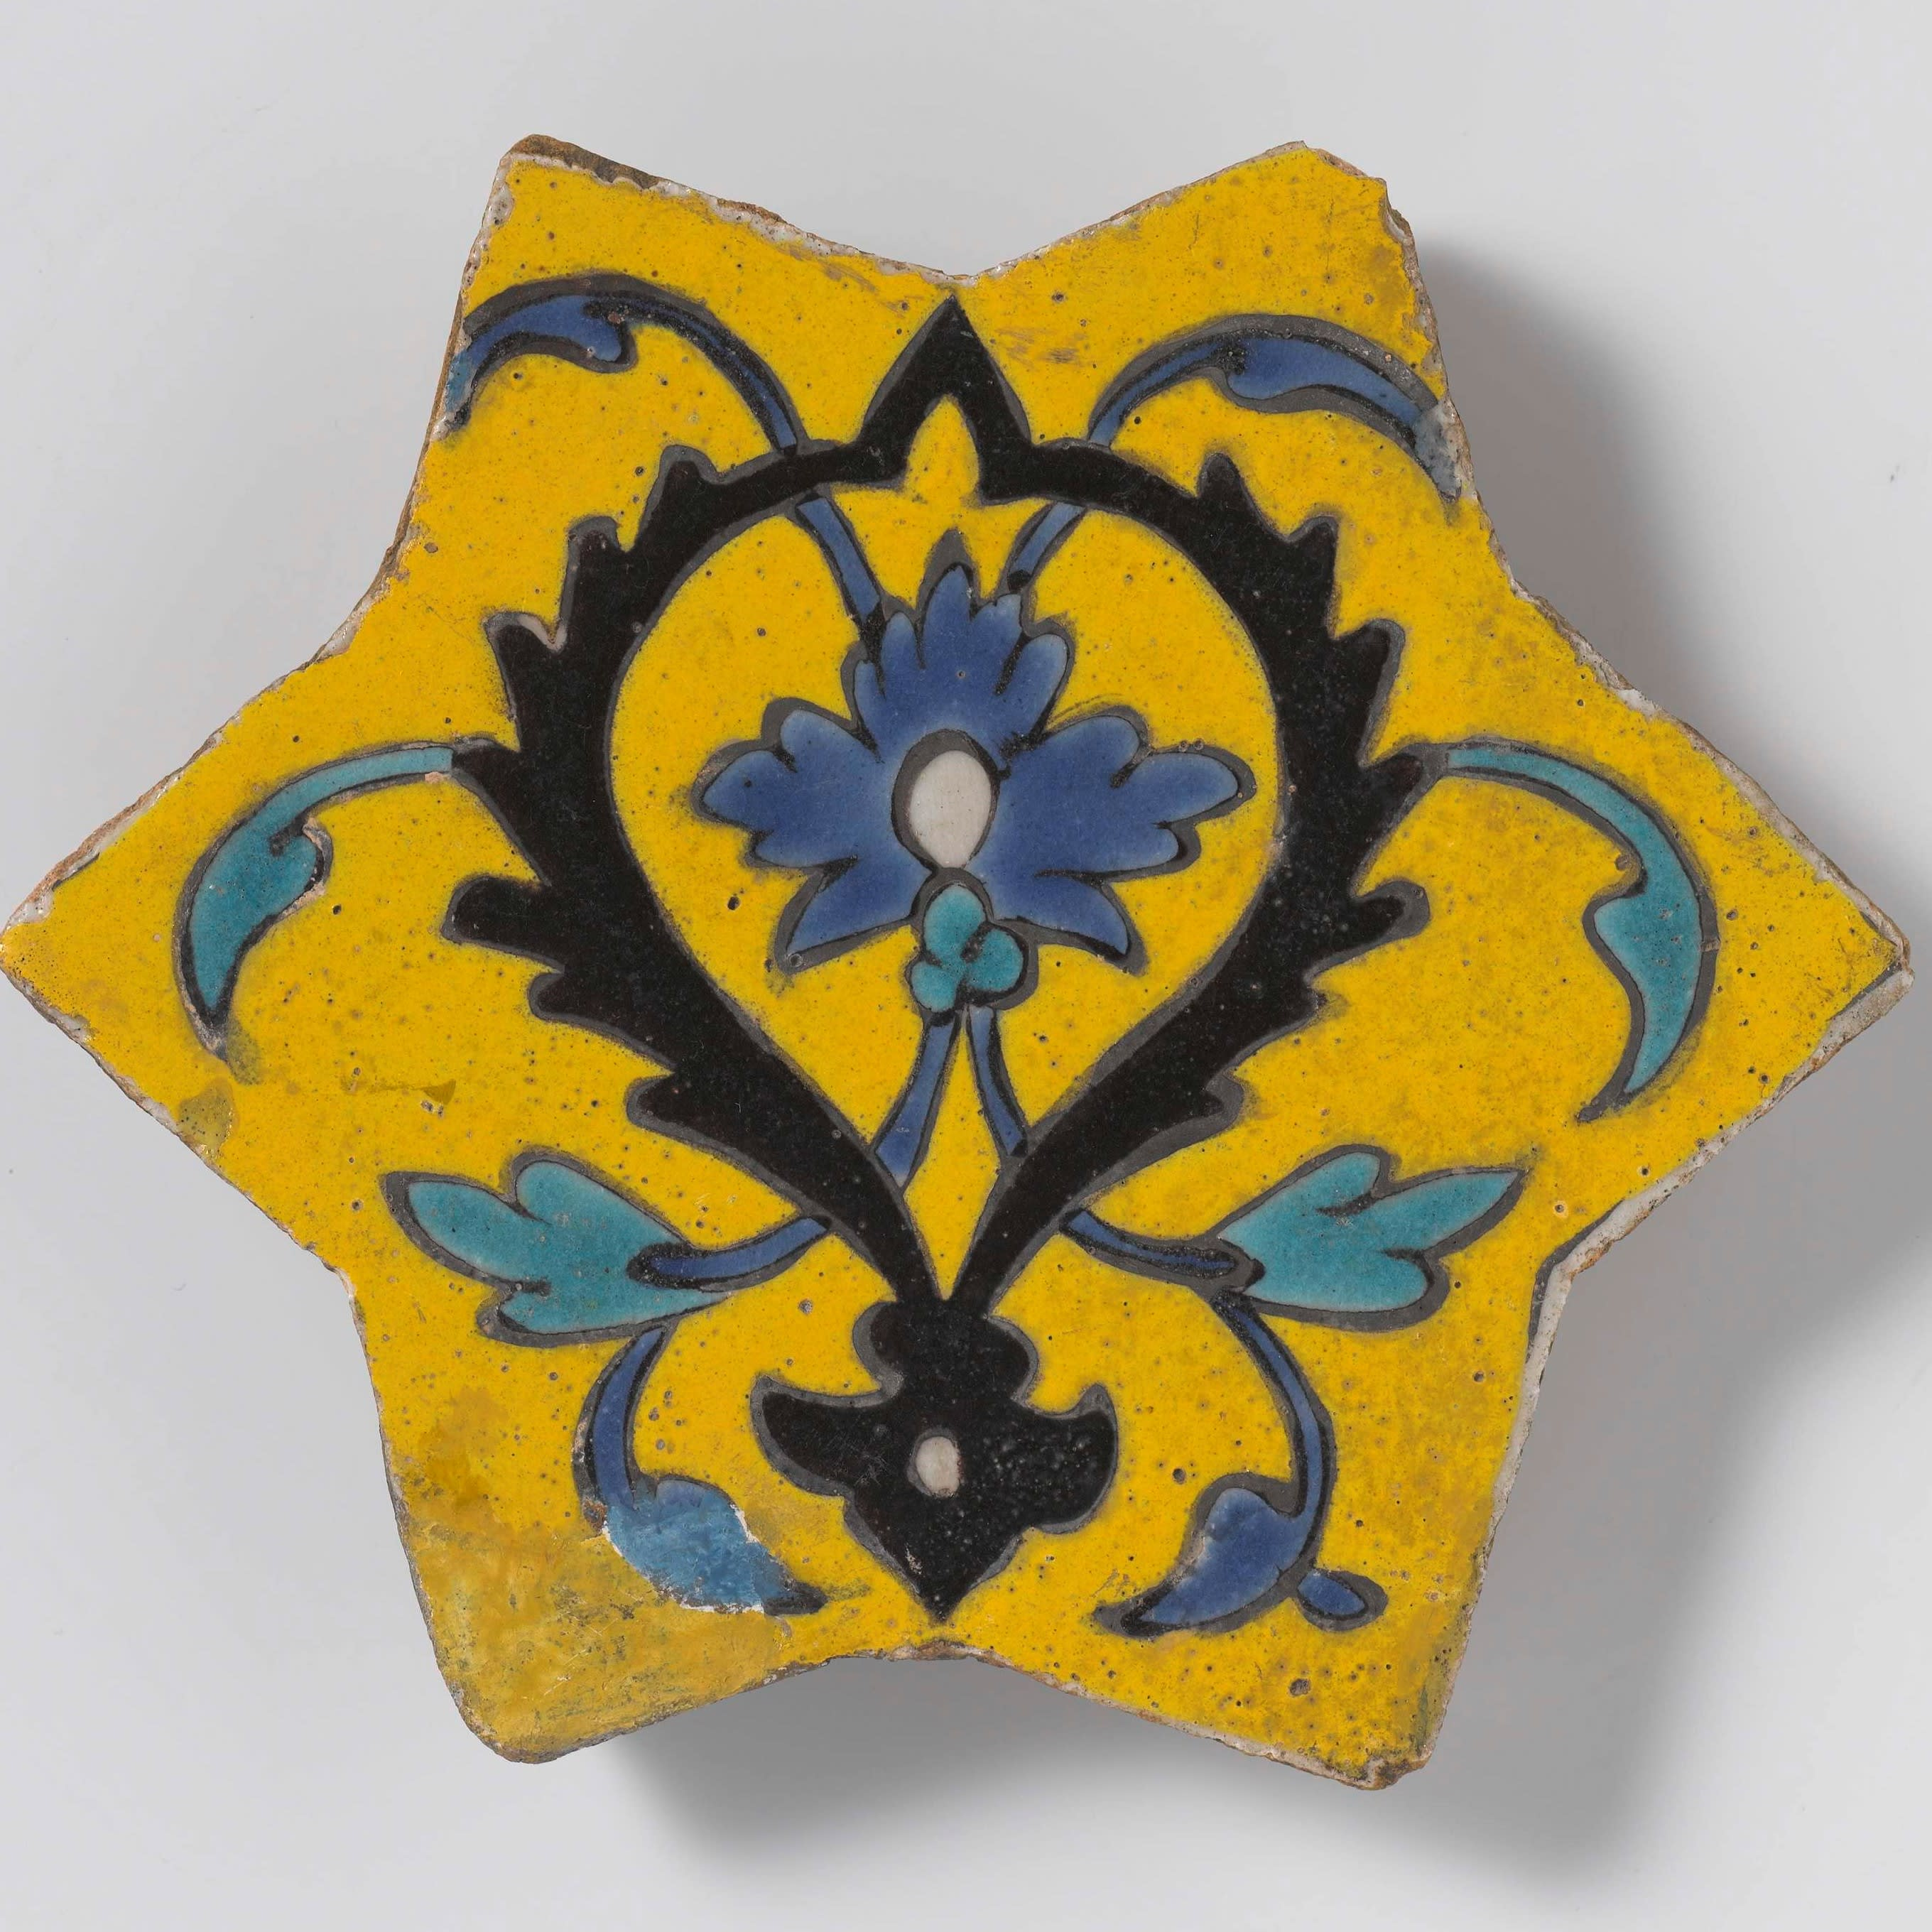 A star-shaped fritware tile decorated with floral scrolls in black, blue, and turquoise on a yellow background.